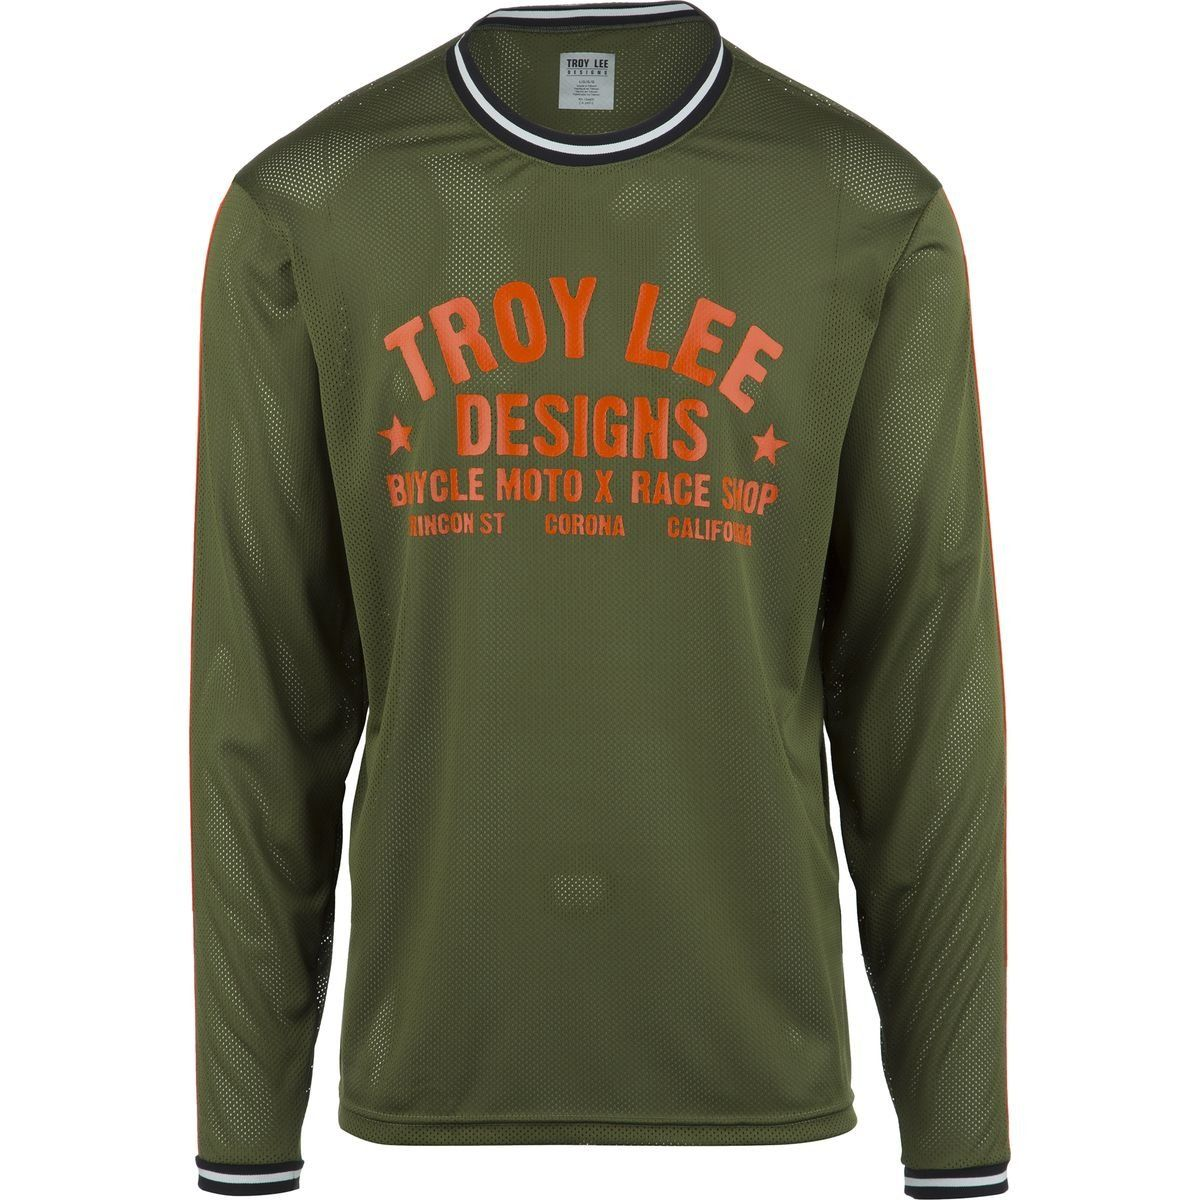 a3db38ae4 Troy Lee Designs Super Retro Men s BMX Bike Jersey - Army Green   Small